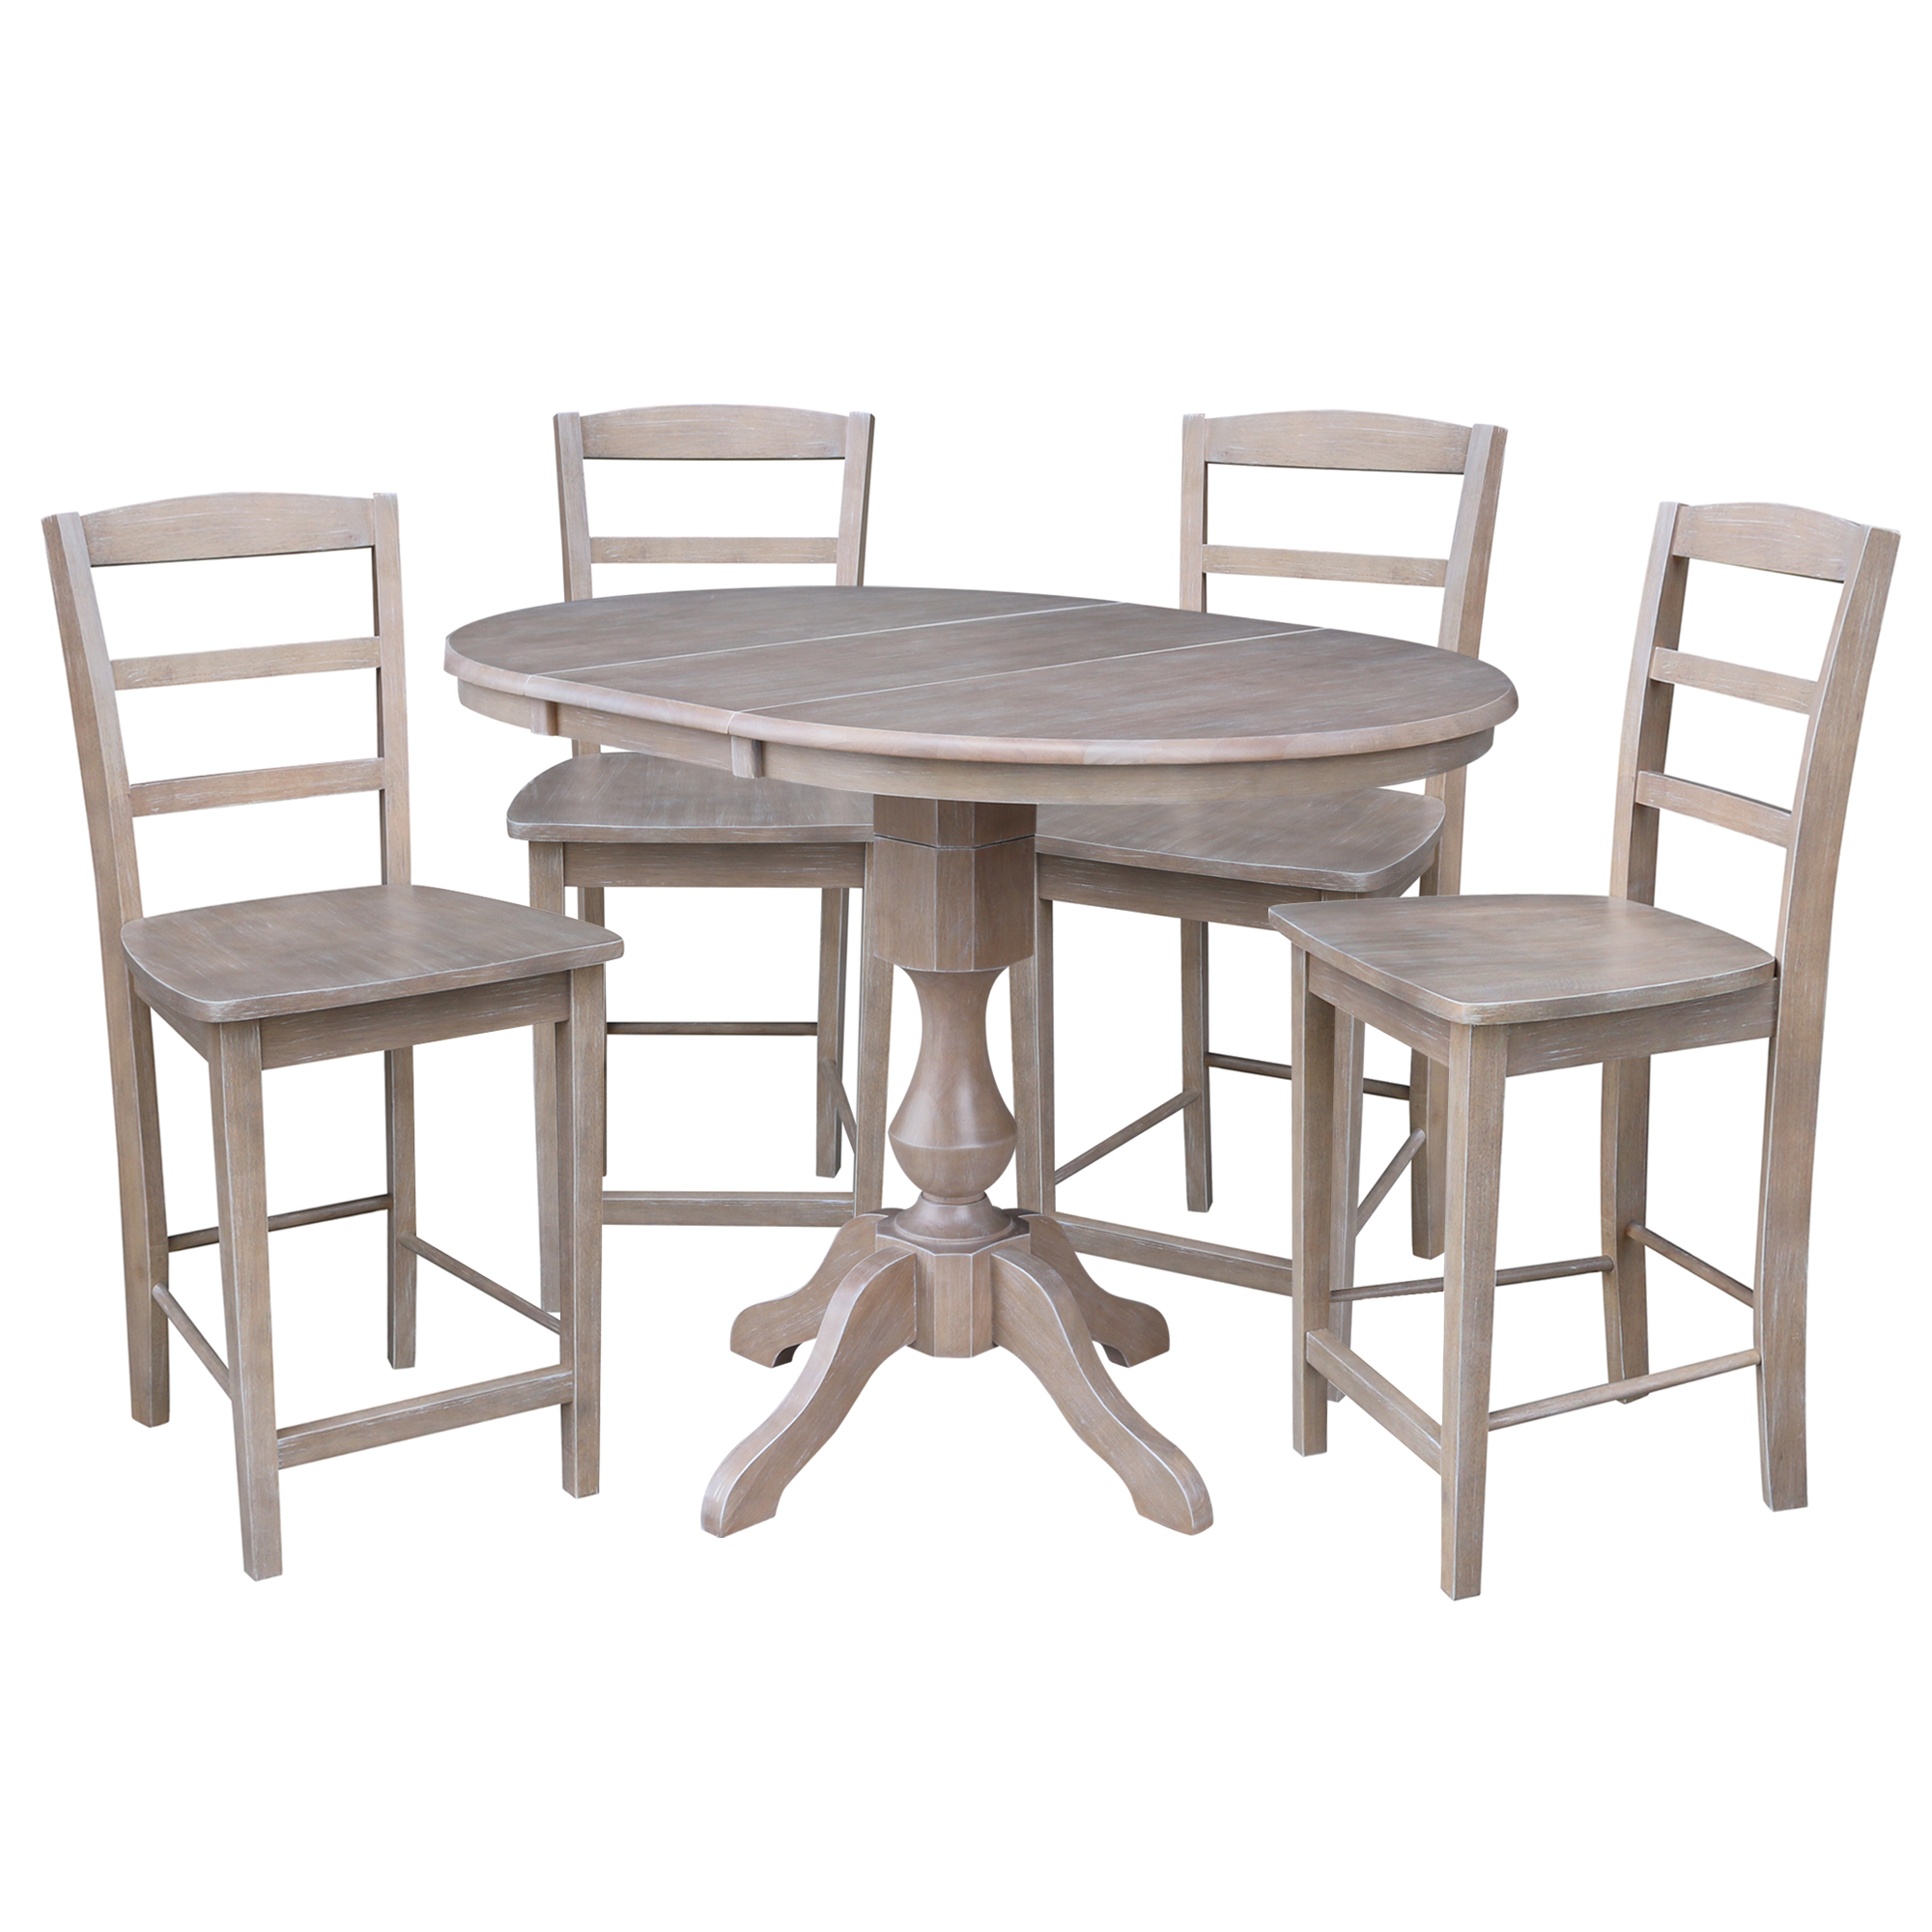 "36"" Round Extension Dining Table with Two Stools - Washed Gray Taupe"